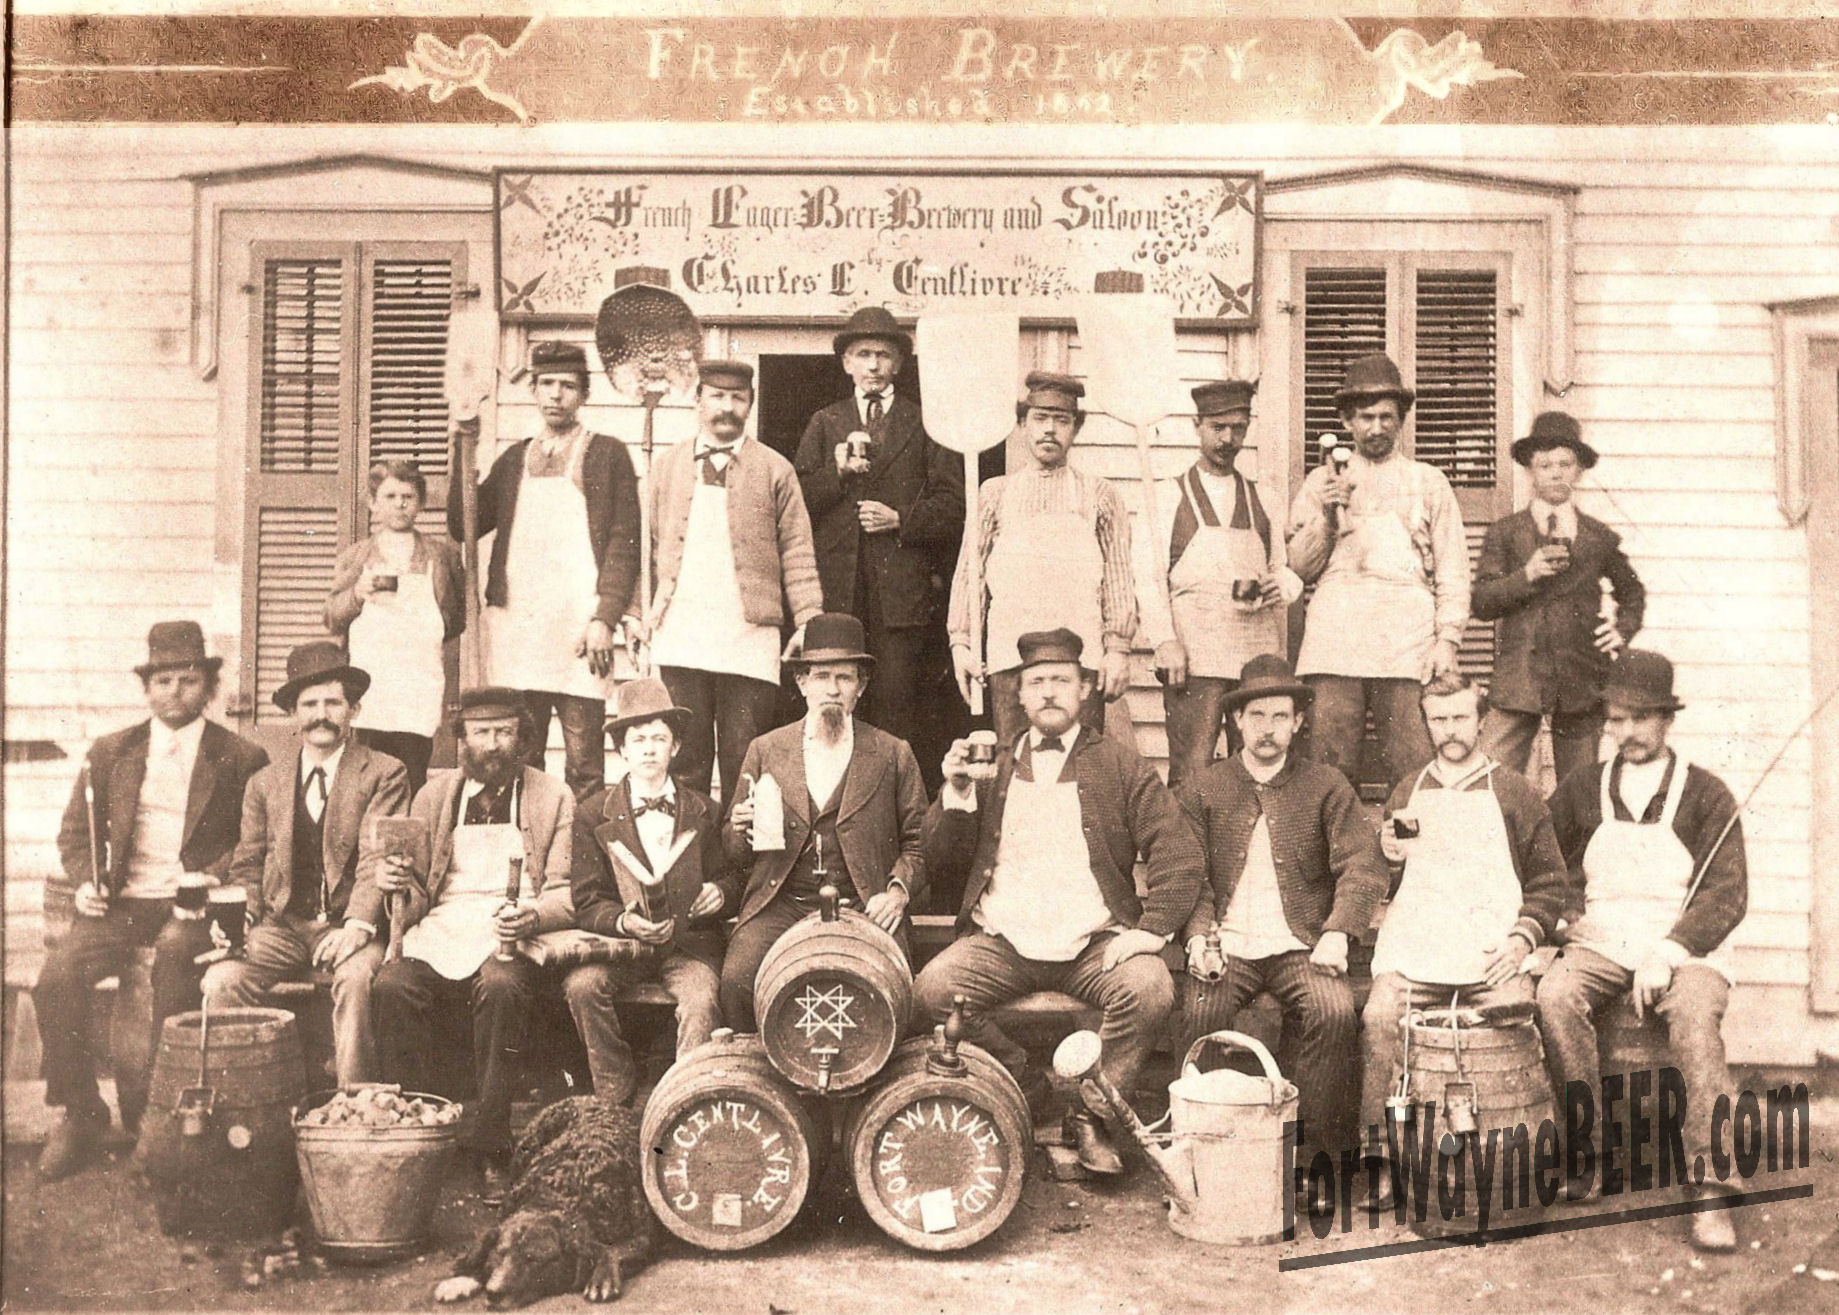 french brewery.jpg